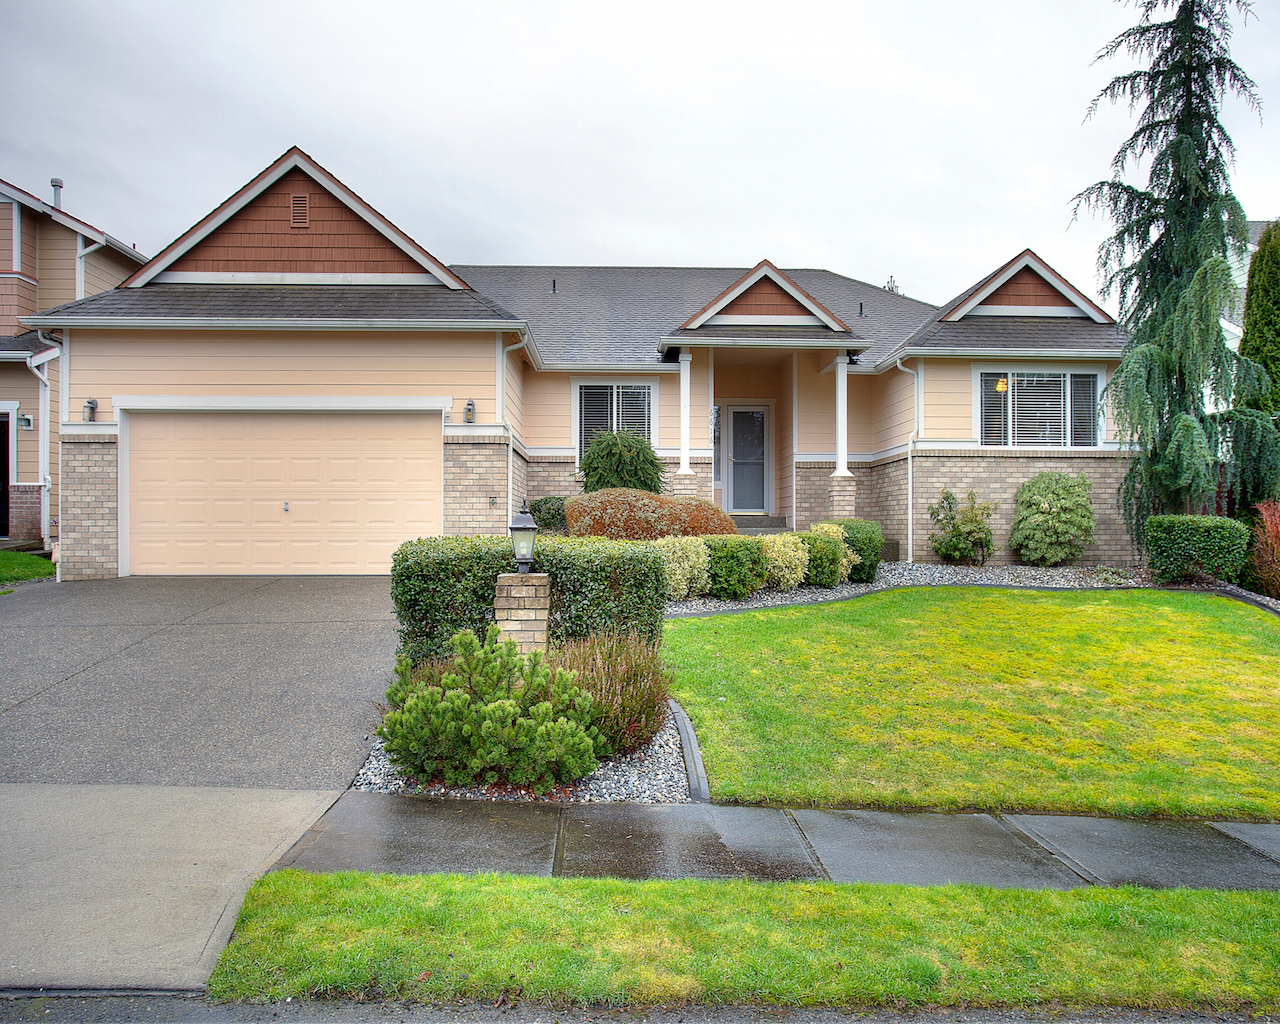 belmont 3 bedroom rambler in gated community michael robinson